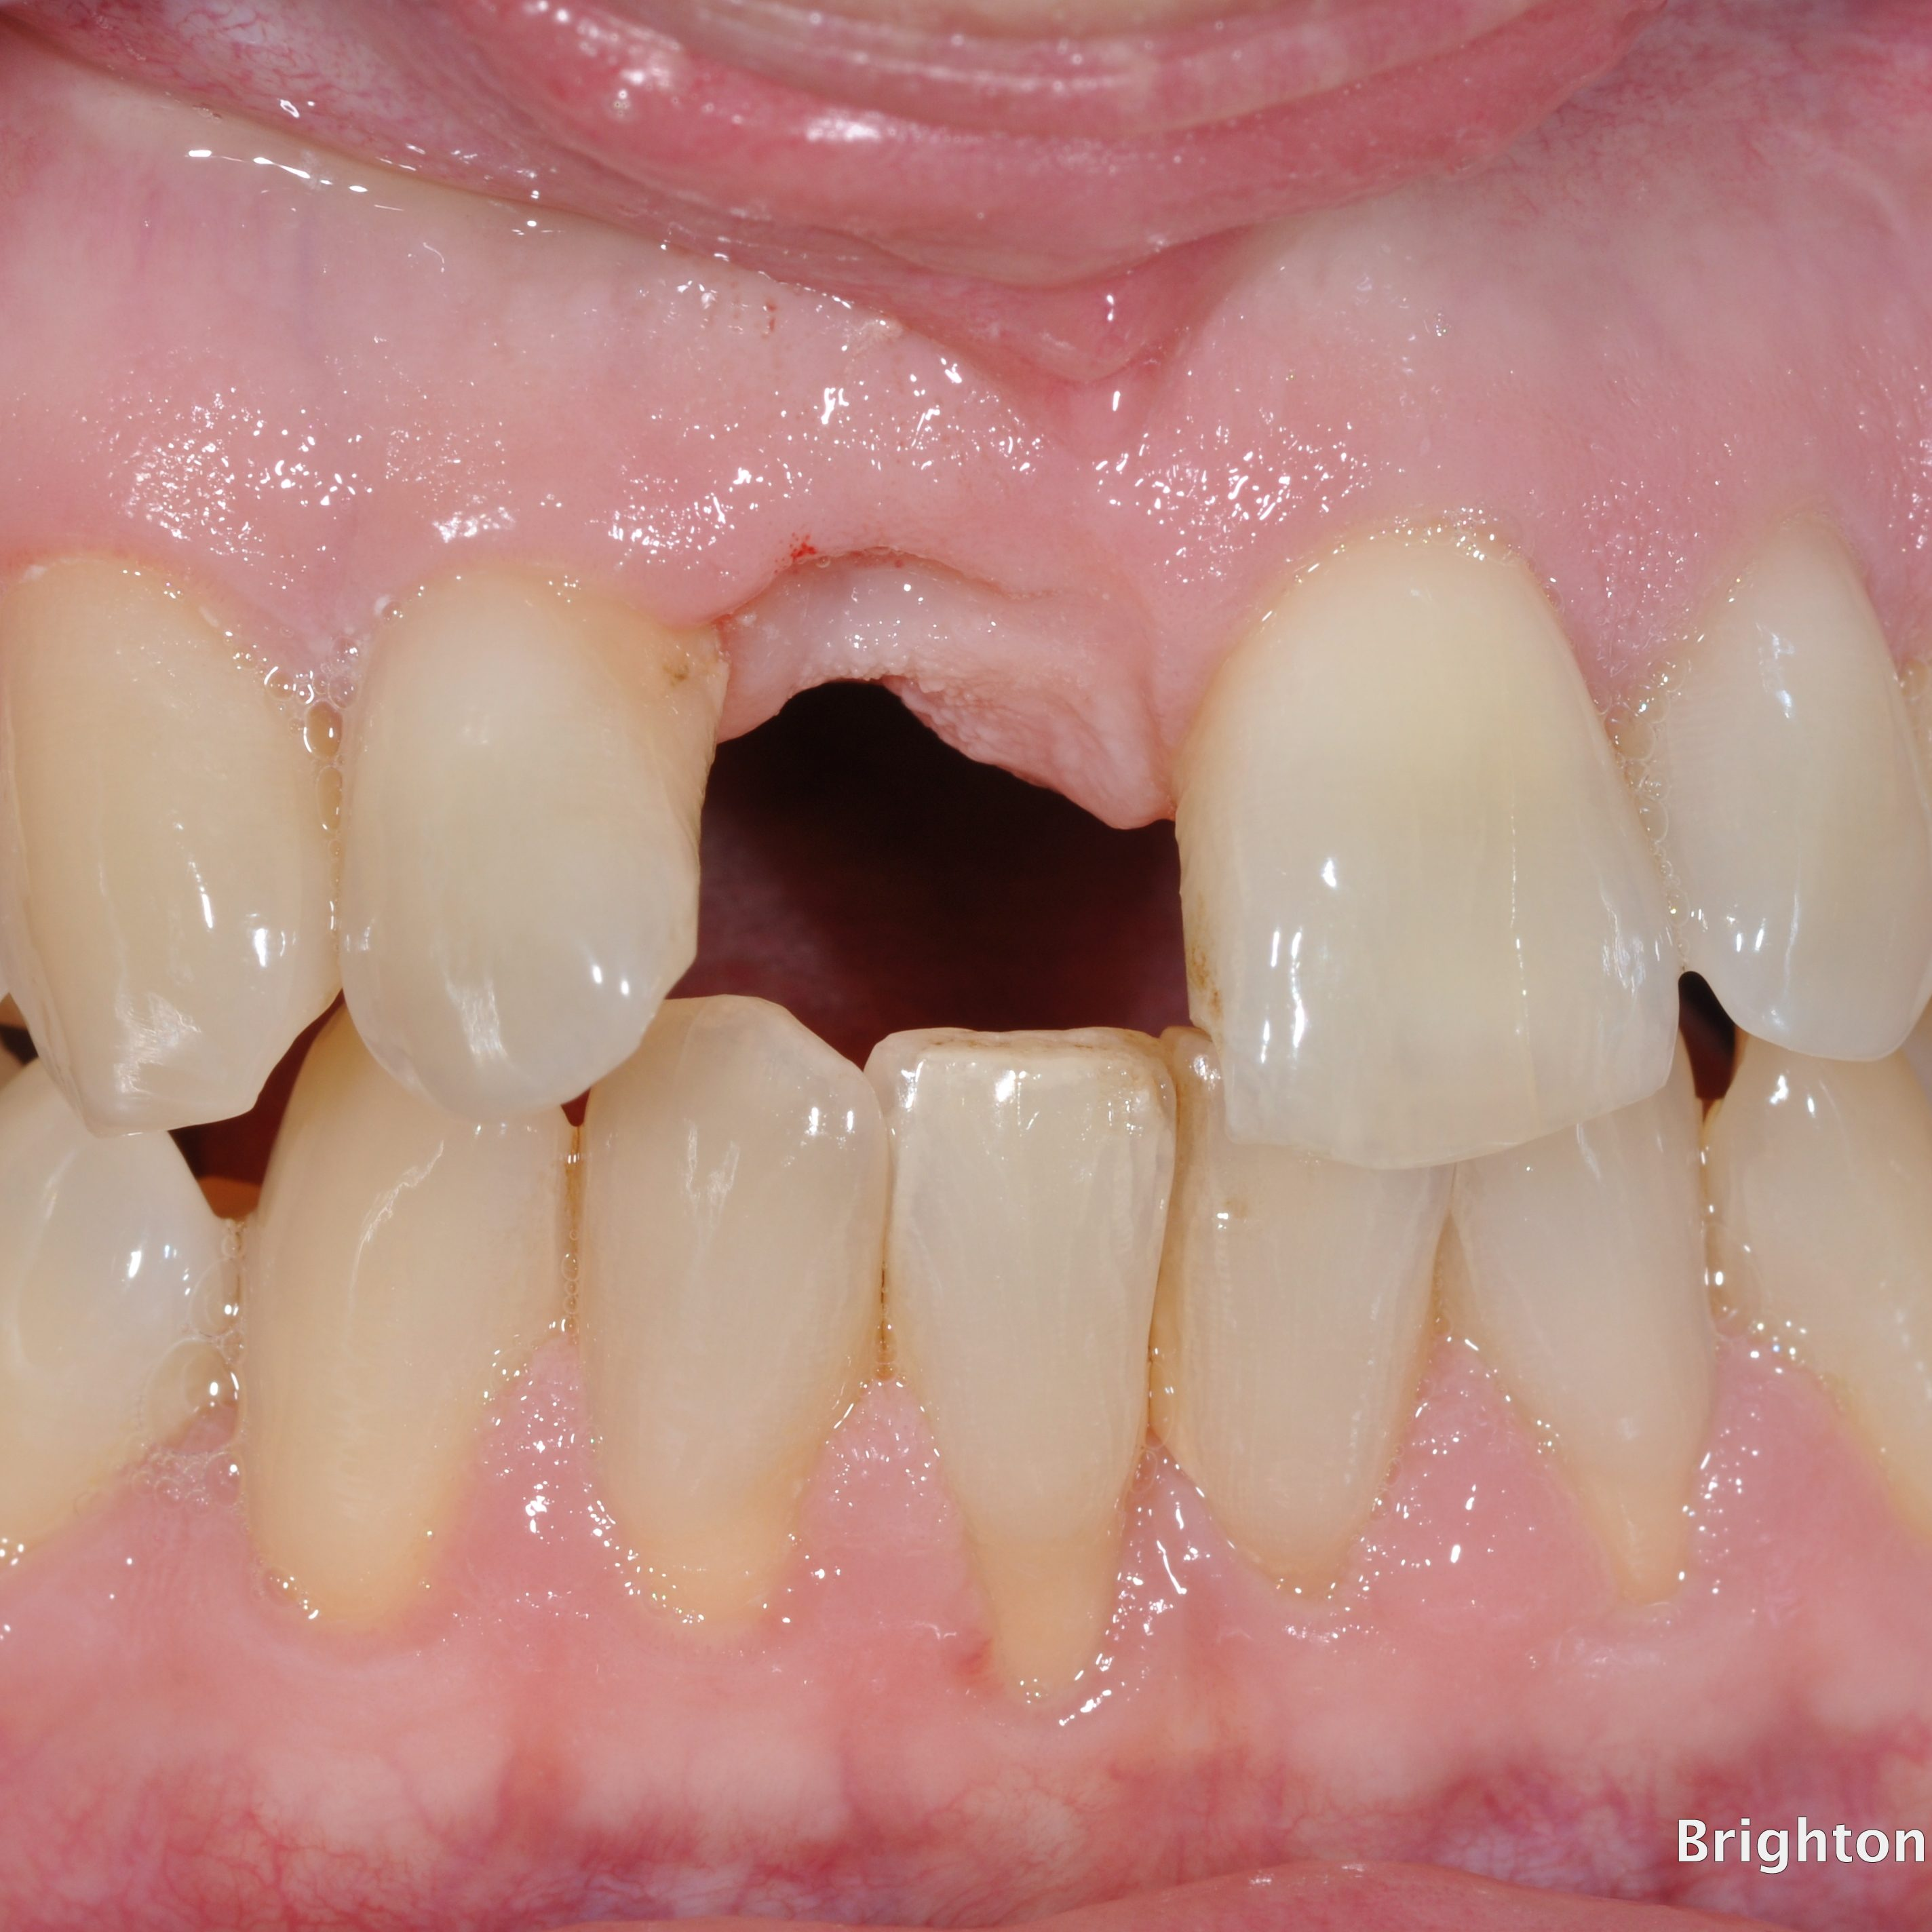 tooth has been extracted, gum and bone tissue loss evident